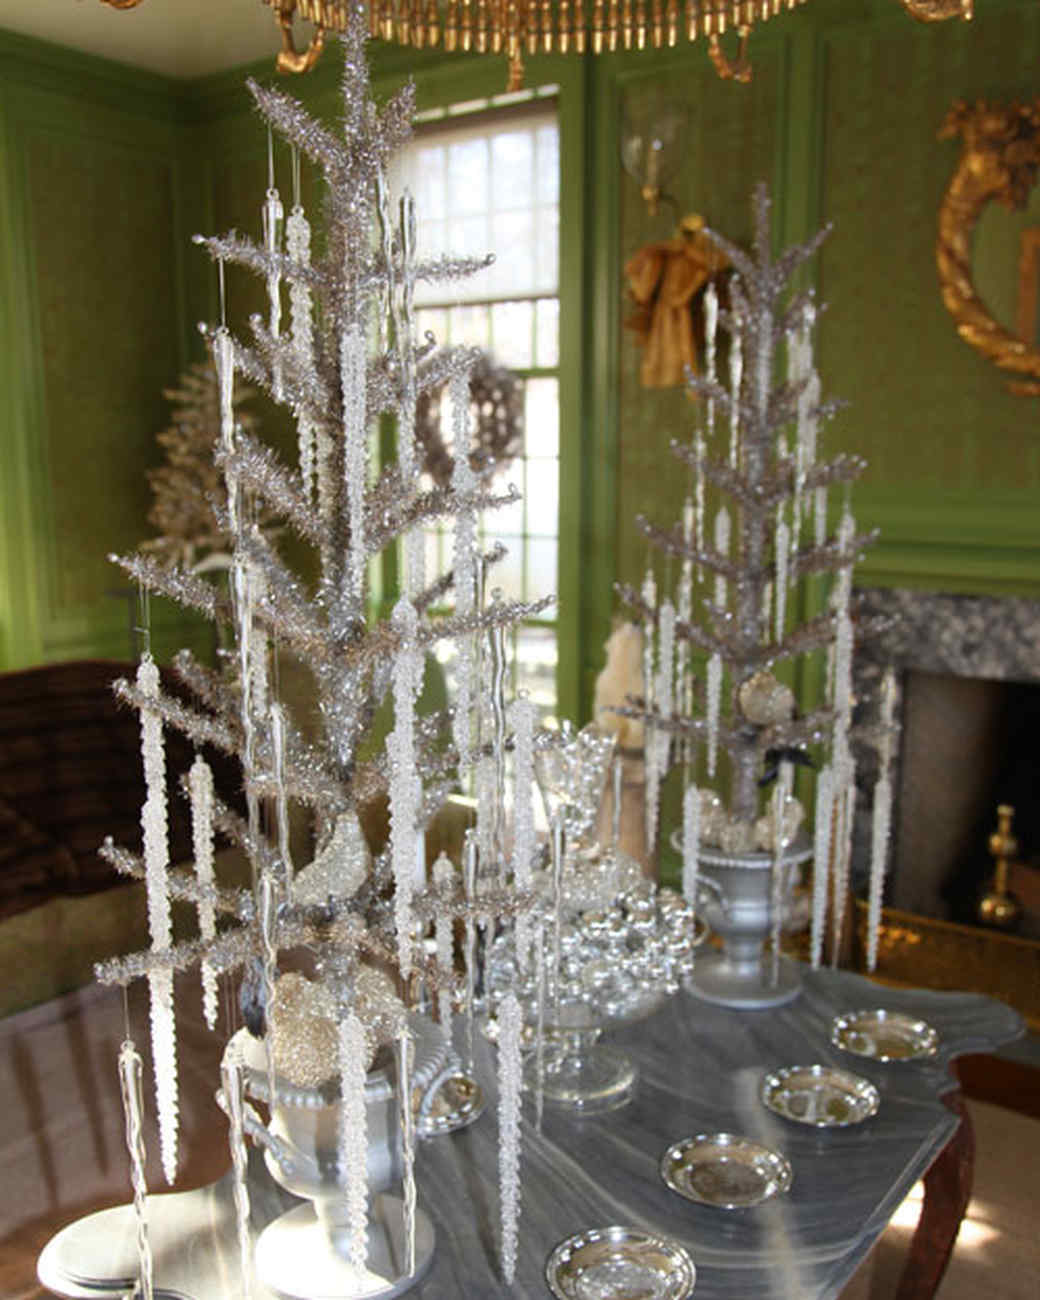 Christmas Decorating Themes martha's holiday decorating ideas | martha stewart